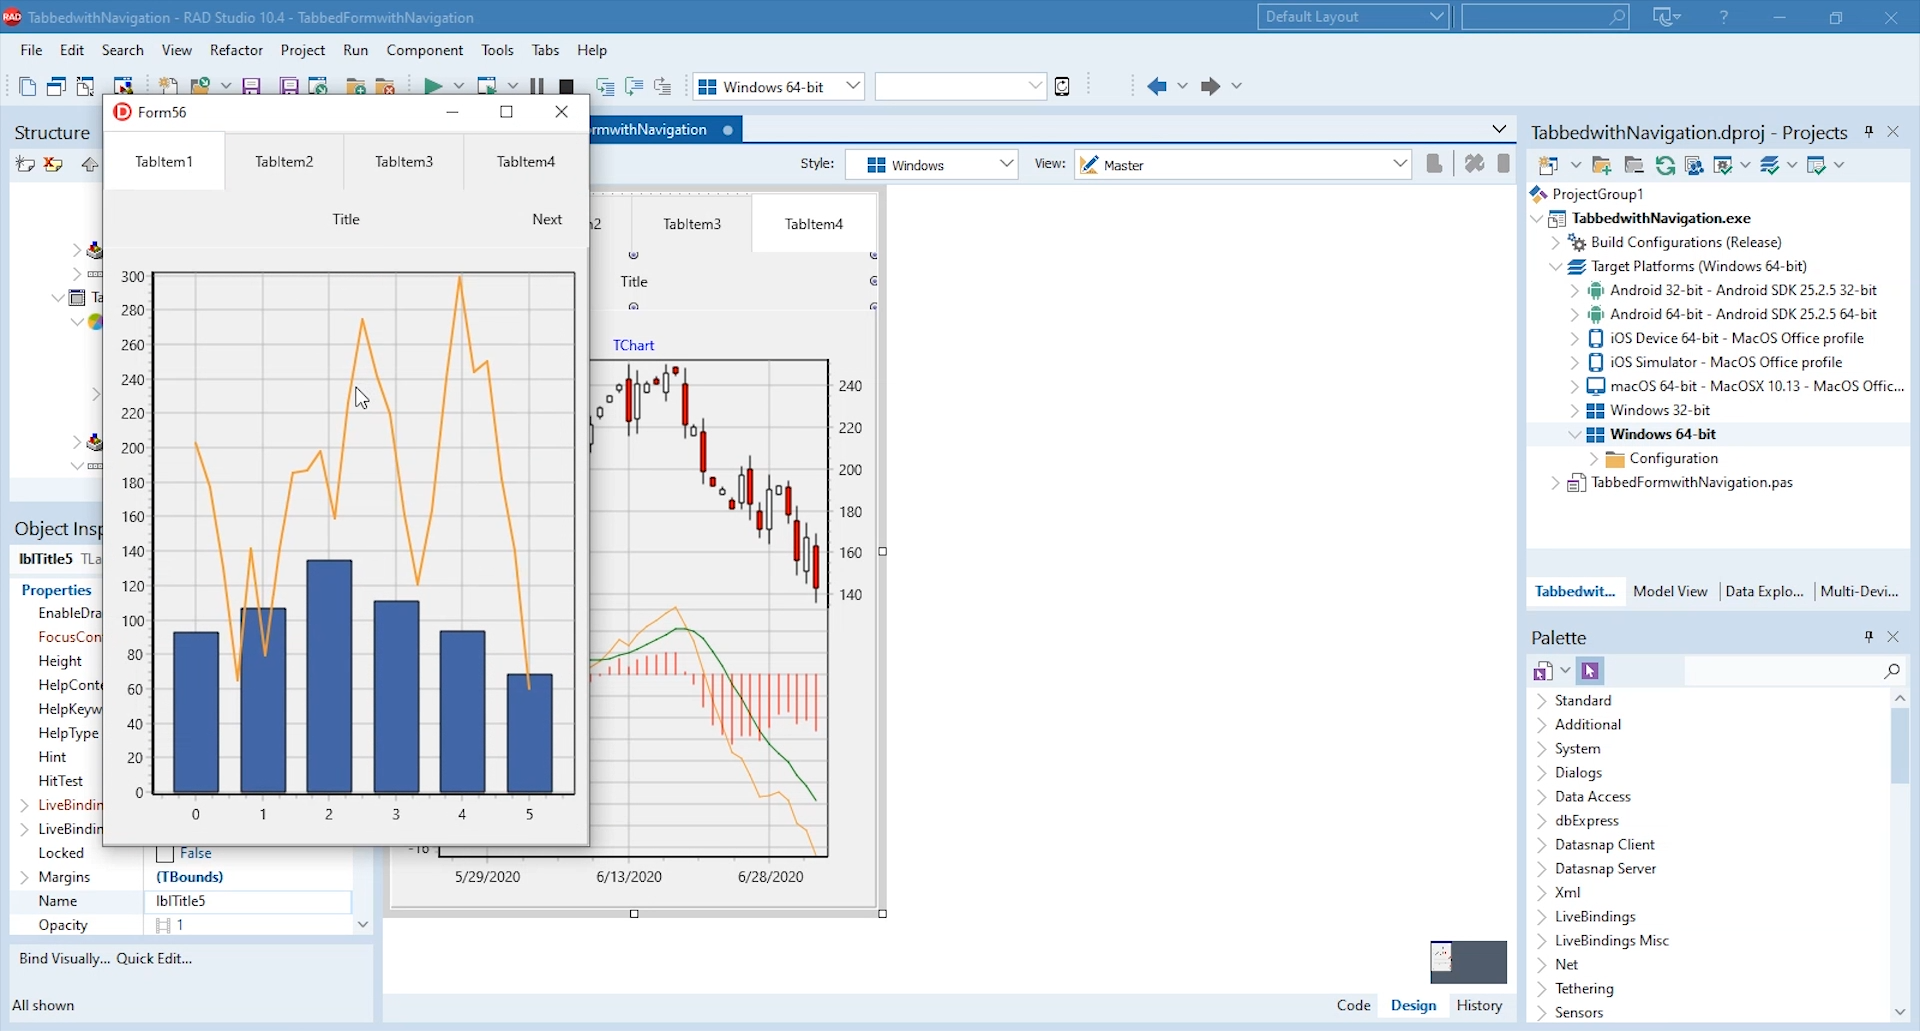 TeeChart Pro on a multi-platform FMX application in Embarcadero's RAD Studio 10.4 Sydney IDE.